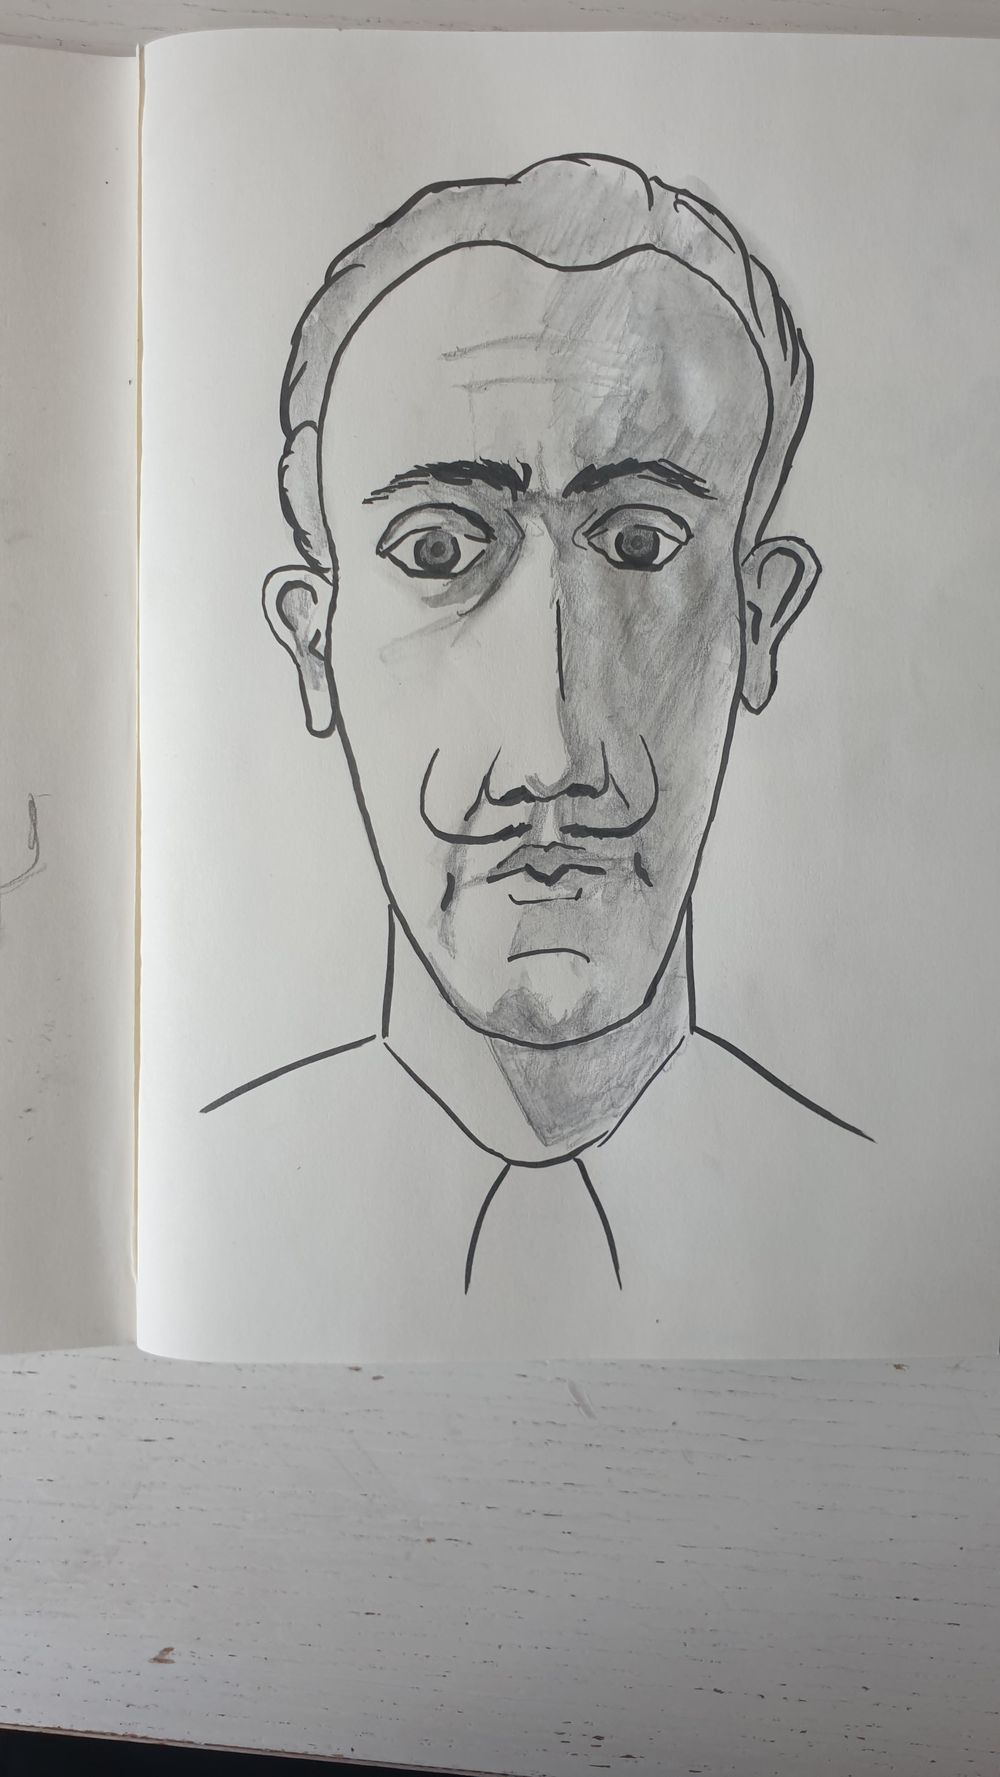 Dali caricature exercise - image 2 - student project